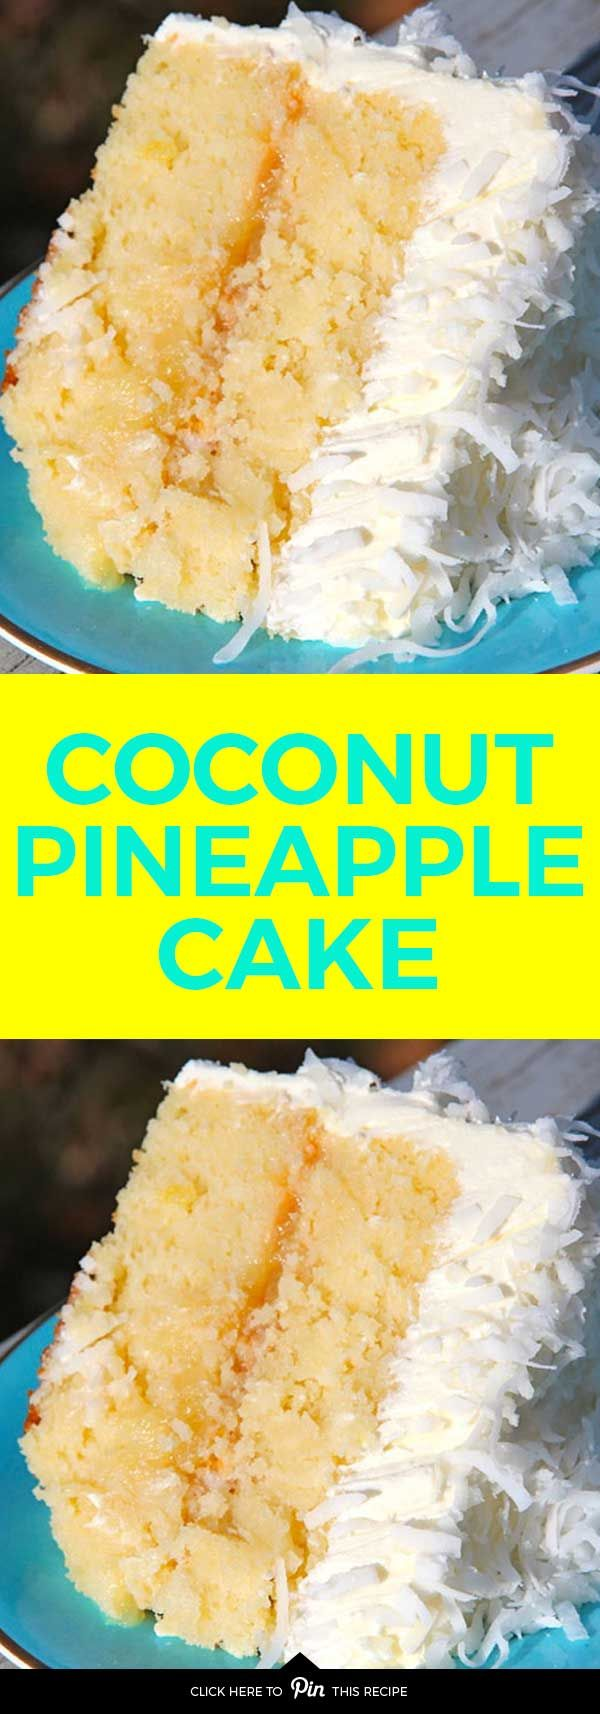 The coconut and pineapple make a perfect marriage in this cake recipe  is part of Desserts -